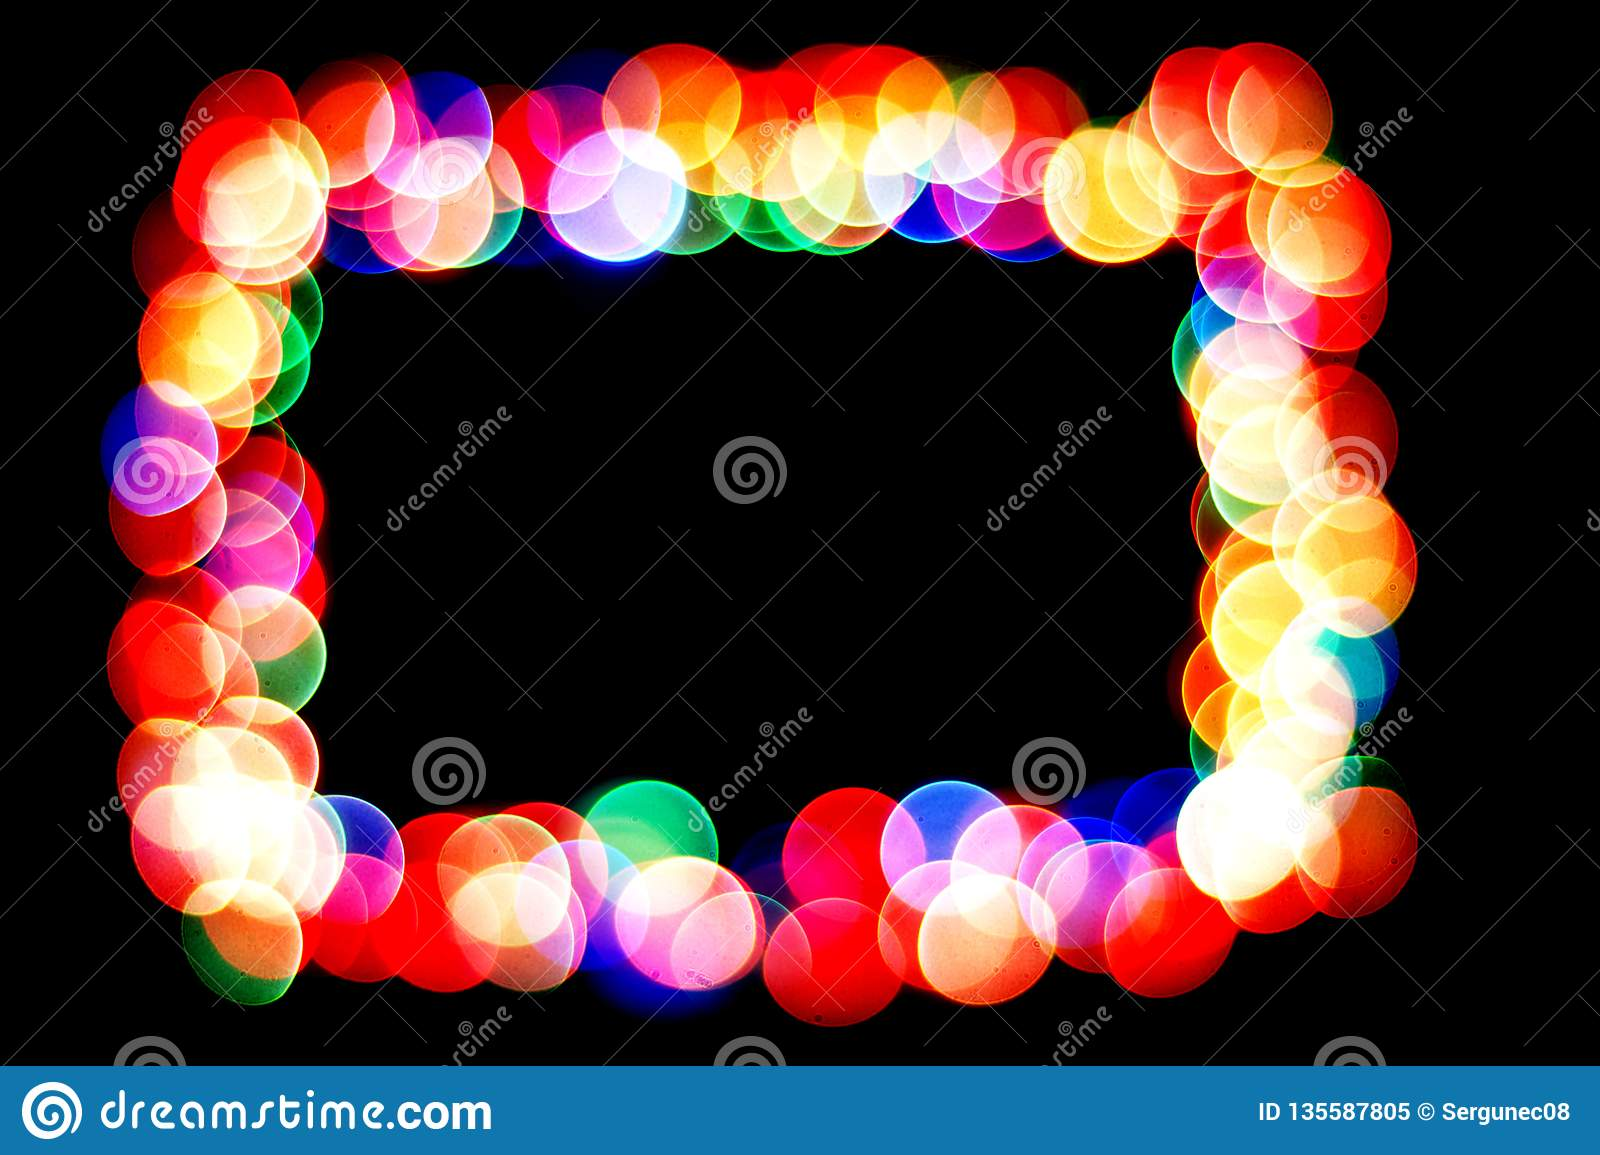 Colorful circles form a frame.bokeh circle isolated on black background.frame of circles